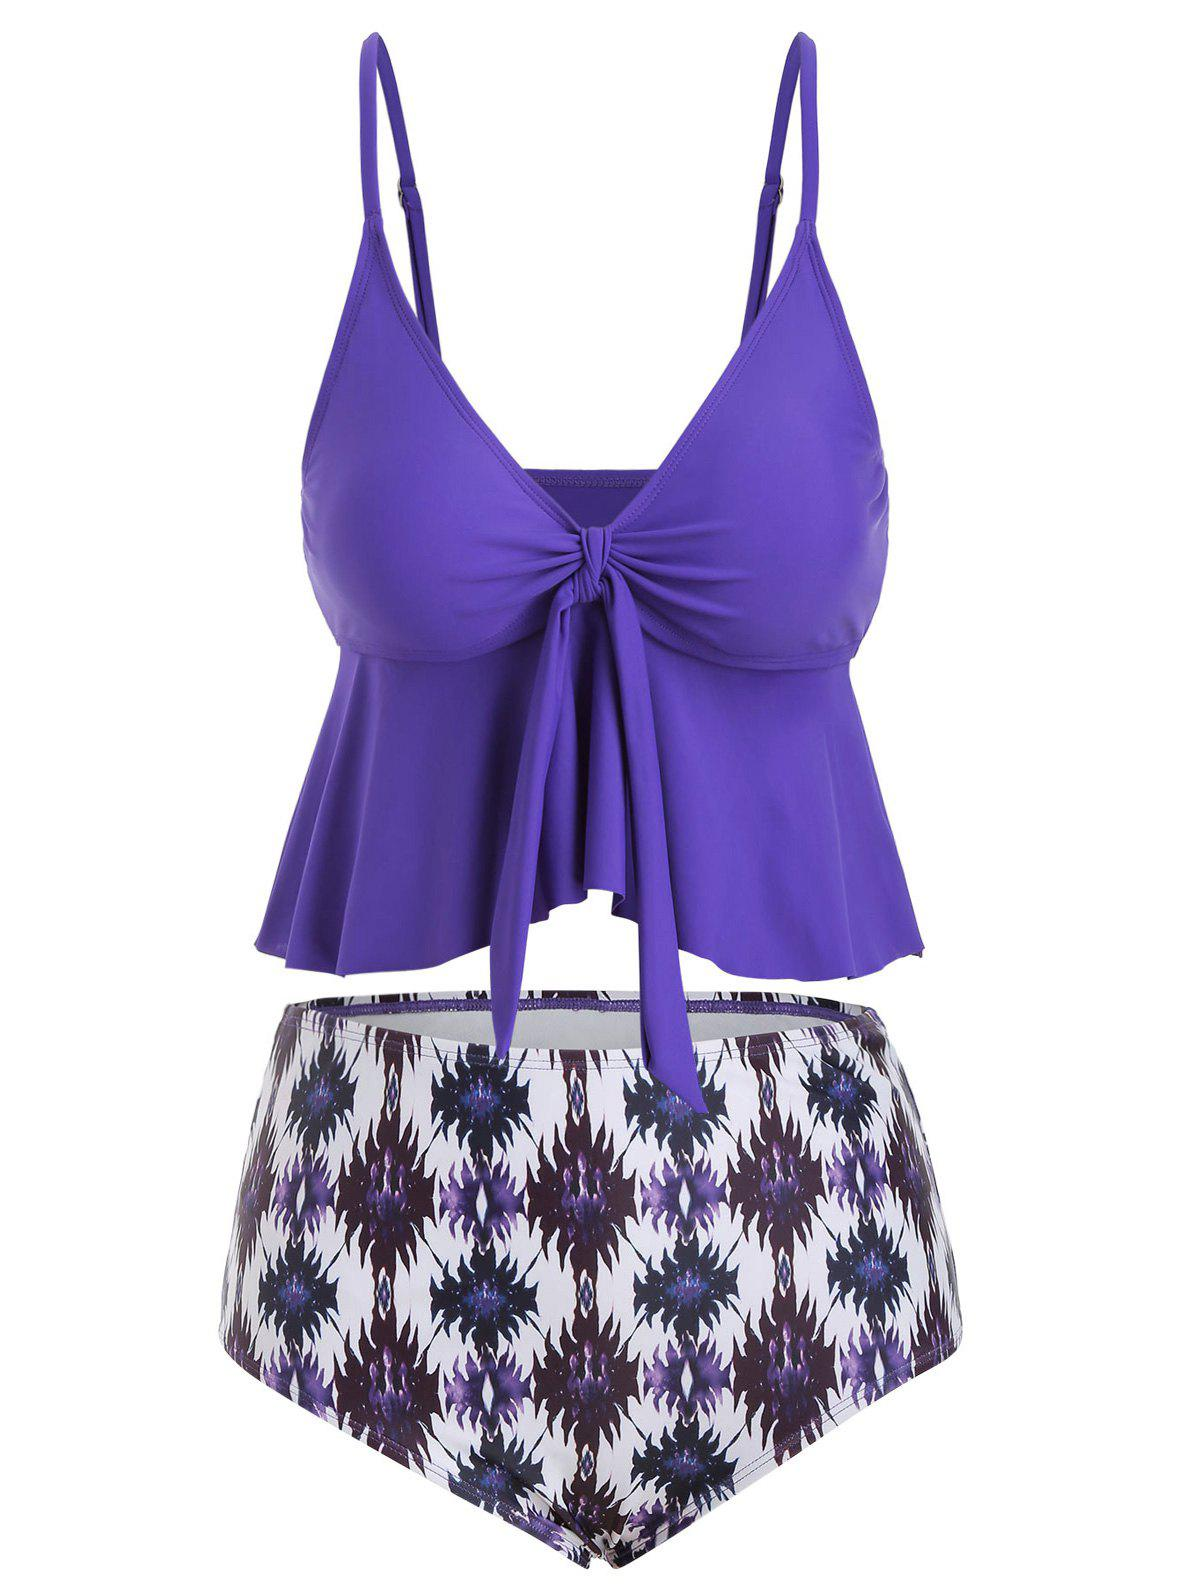 Knot Flounce Printed Plus Size High Waisted Bikini Swimsuit - PURPLE AMETHYST 4X